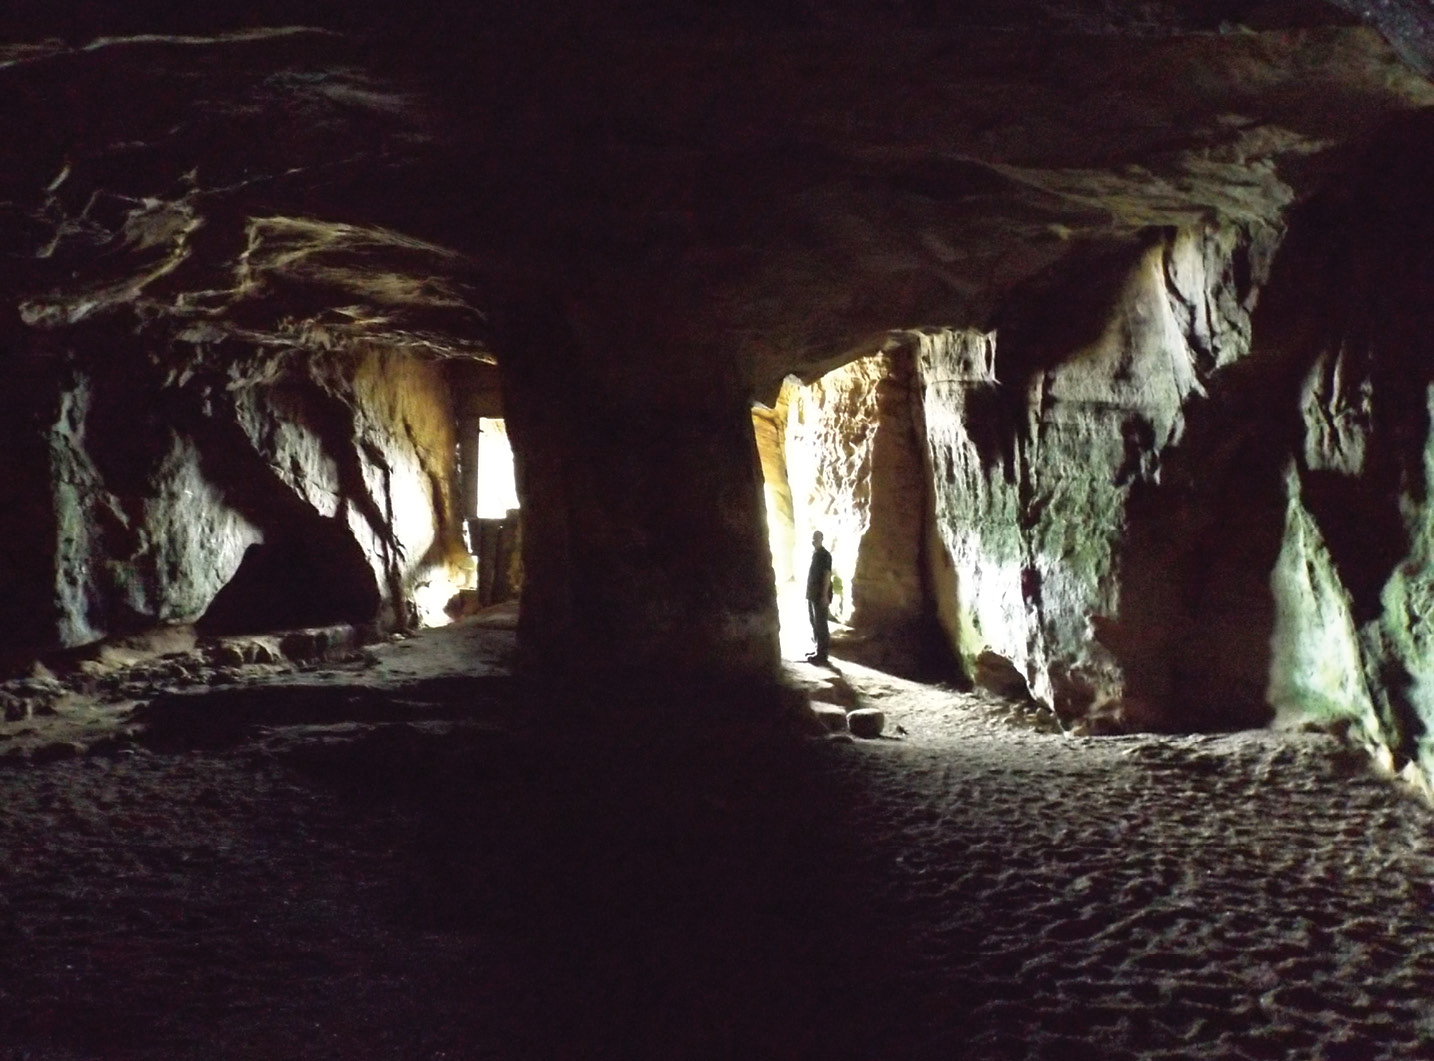 left The cave opens into strikingly regular twin entrance passages that give it an almost monumental appearance.